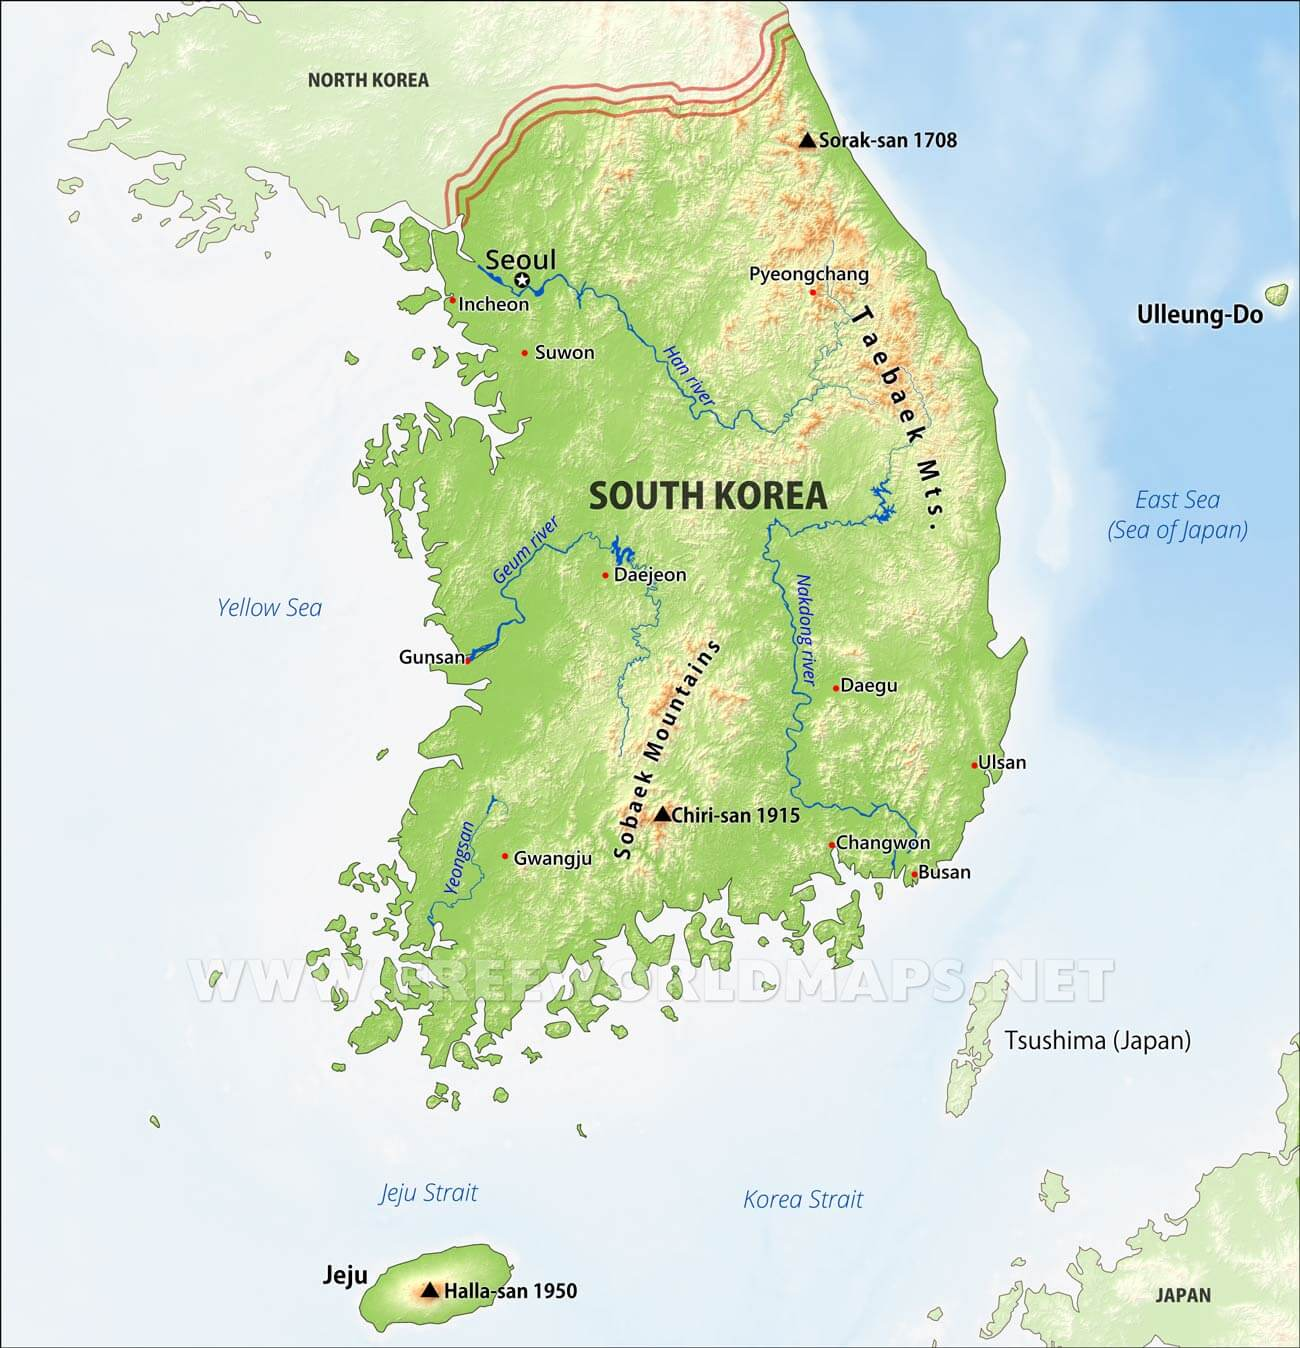 South Korea Map South Korea Physical Map South Korea Map